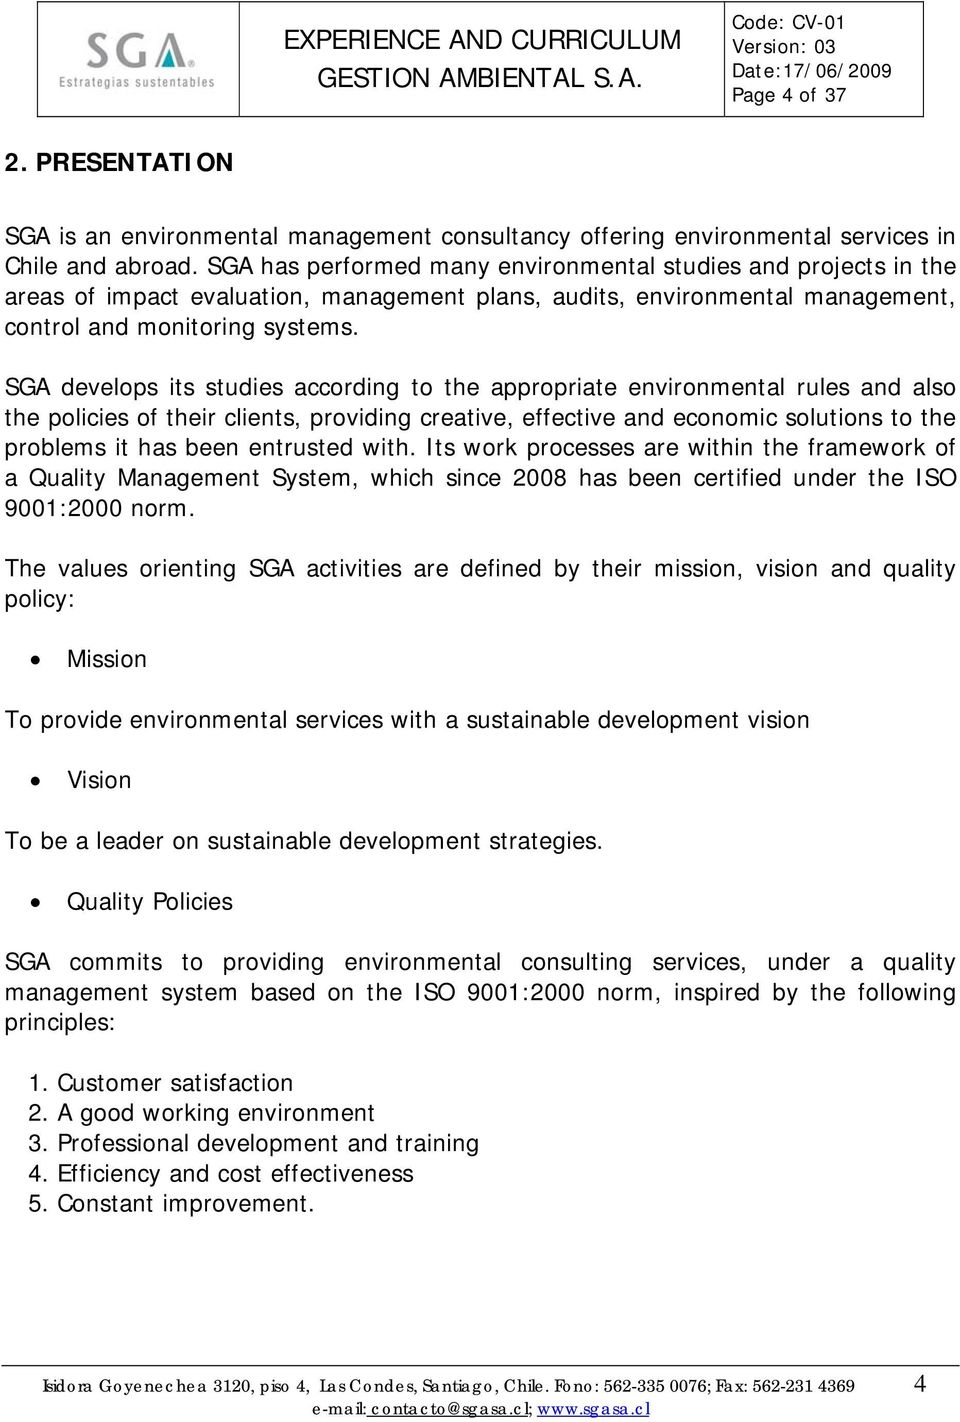 SGA develops its studies according to the appropriate environmental rules and also the policies of their clients, providing creative, effective and economic solutions to the problems it has been